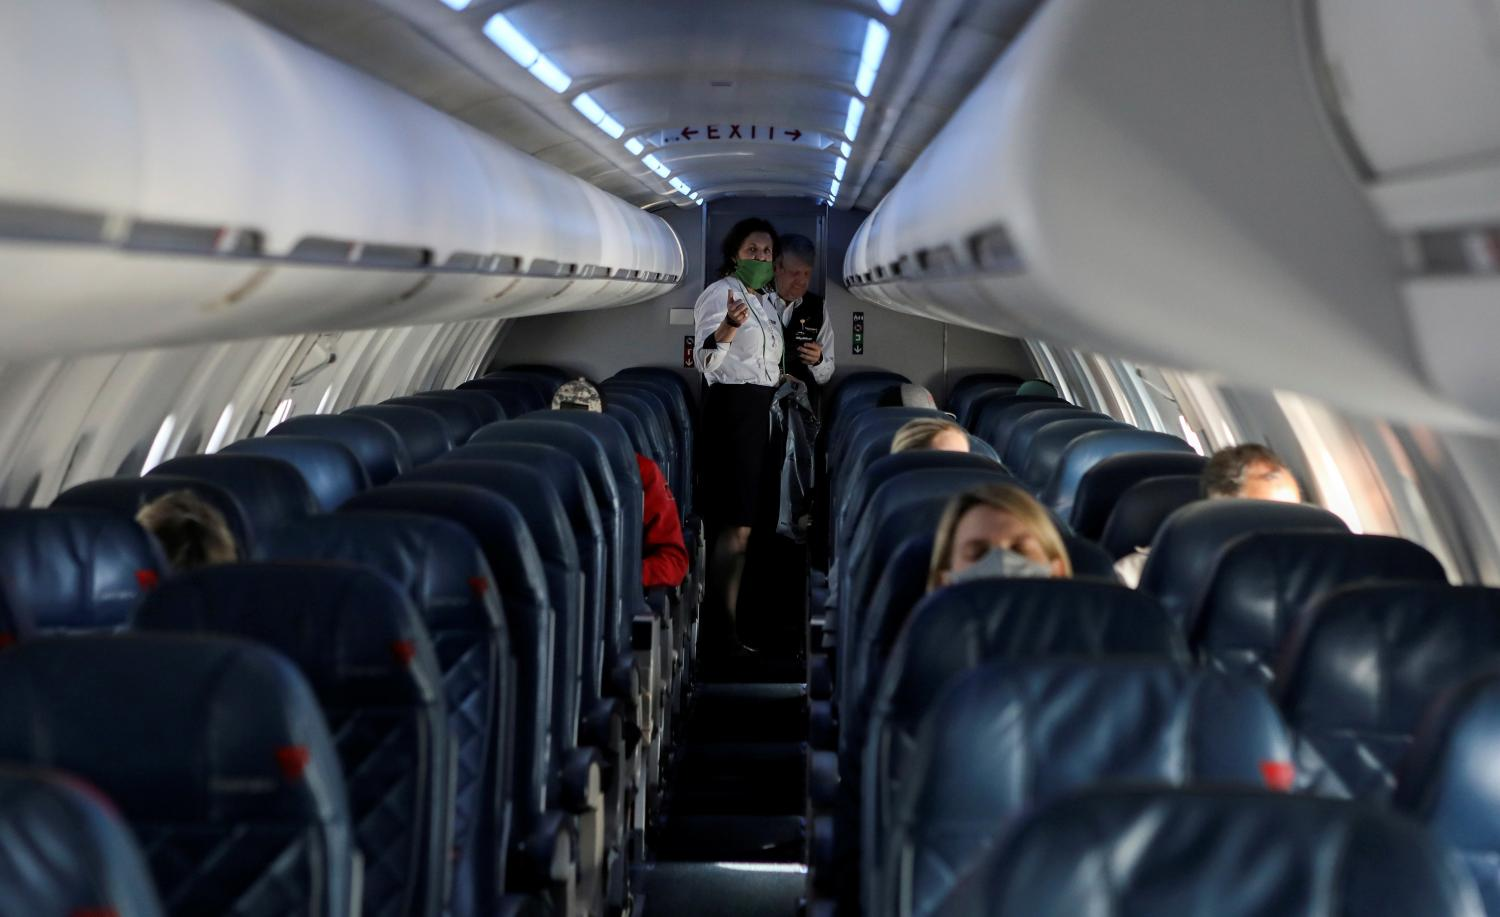 Airlines are trying to reassure passengers that masks and filtered cabin air provide reliable protection from infection in flight.(Reuters)